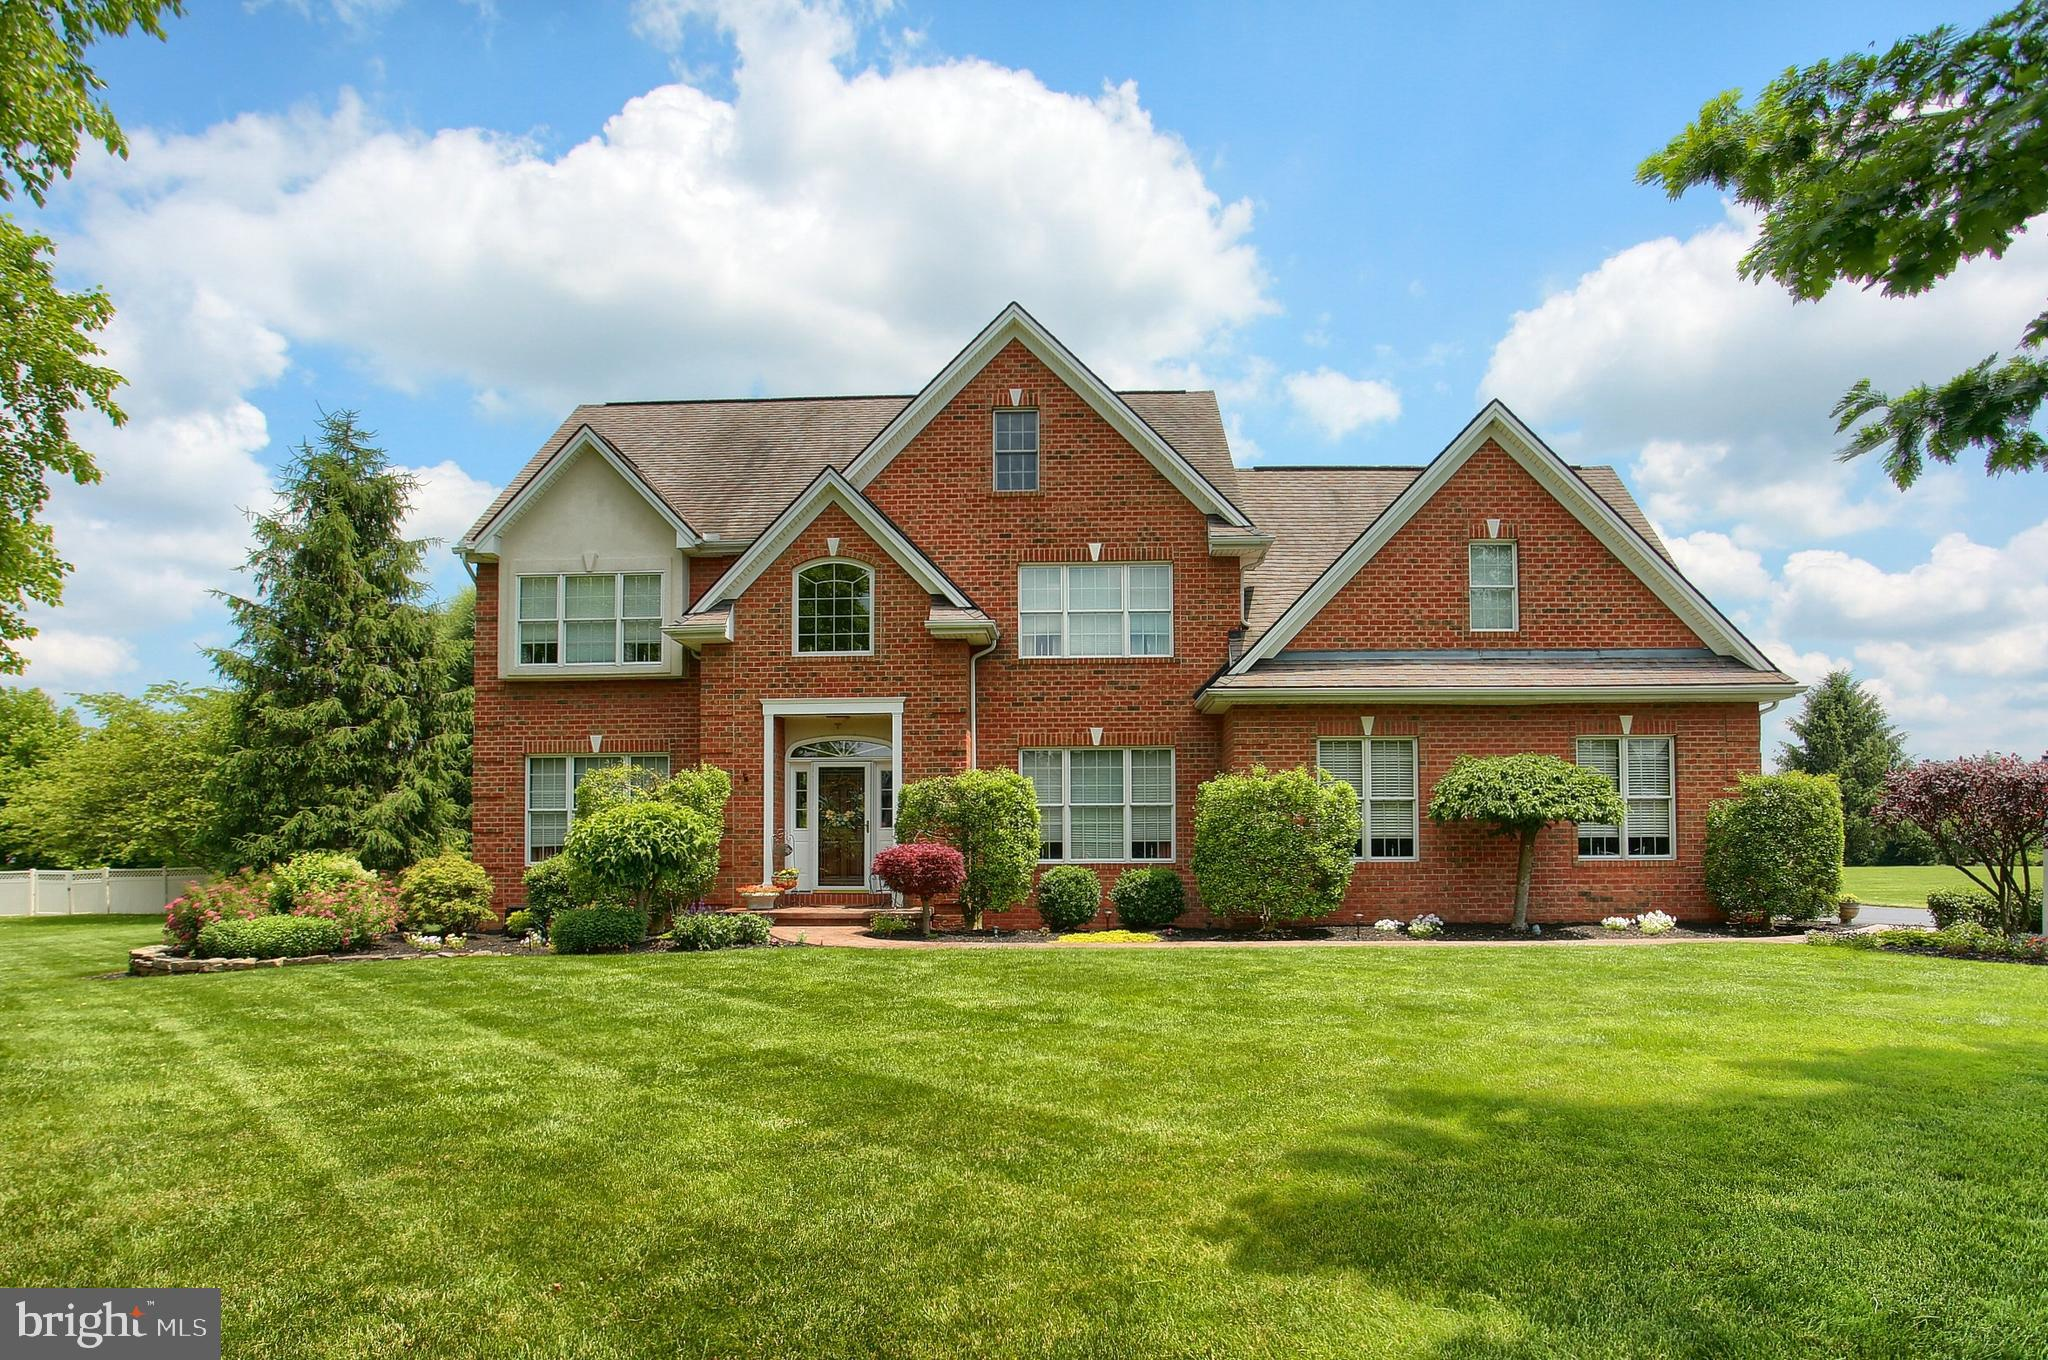 525 Lucinda Lane, Mechanicsburg, PA 17055